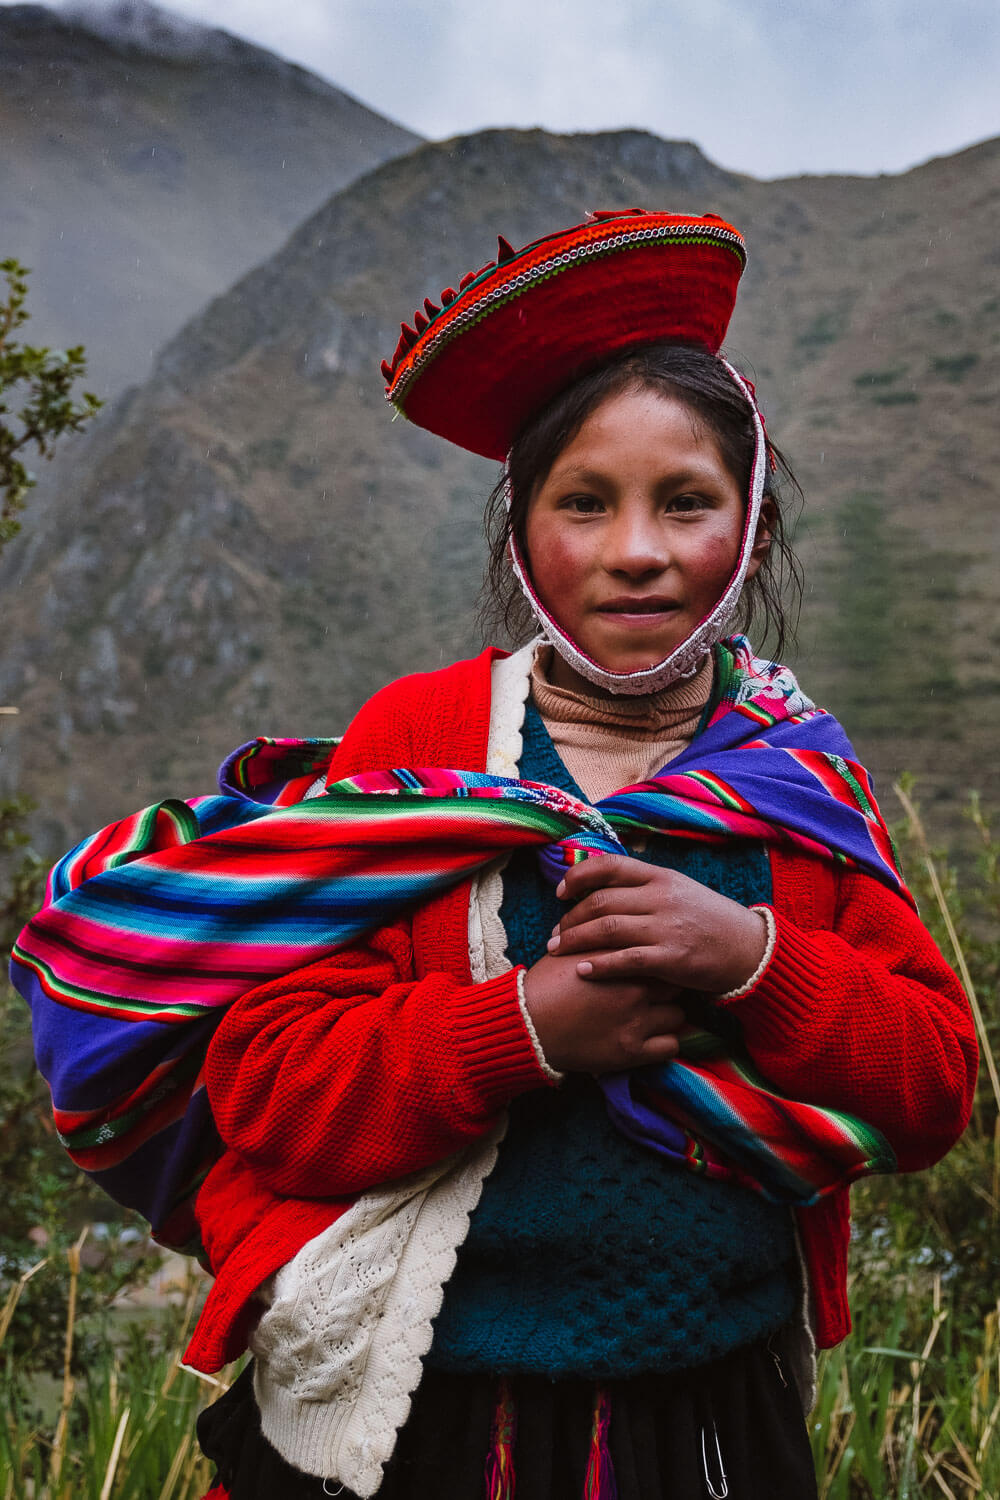 """The young daughter who has already mastered many weaving skills. The weavers of Patacancha, The Sacred Valley, Peru. Travel photography and guide by © Natasha Lequepeys for """"And Then I Met Yoko"""". #peru #sacredvalley #patacancha #photoblog #travelblog #travelphotography #portraitphotography #travelitinerary #fujifilm #weaving #tradition #culture #people #andes #village #weavingdemonstration #cusco #ollantaytambo #travel #travelperu"""